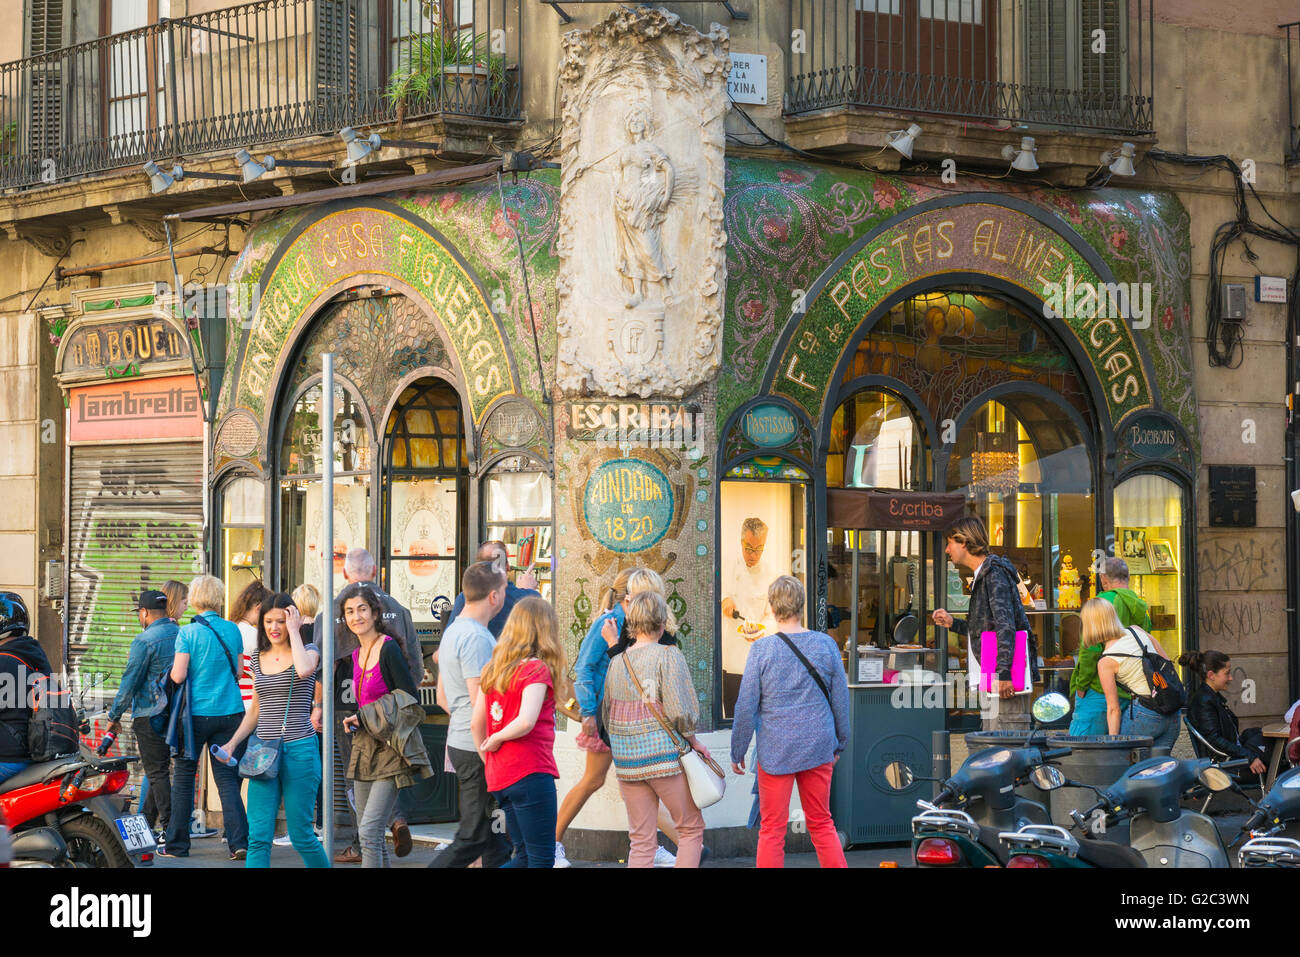 Spain Catalonia Barcelona Barri Gotic Old Town Gothic Quarter Las Ramblas cafe coffee shop patisserie Escriba Pastisseria - Stock Image